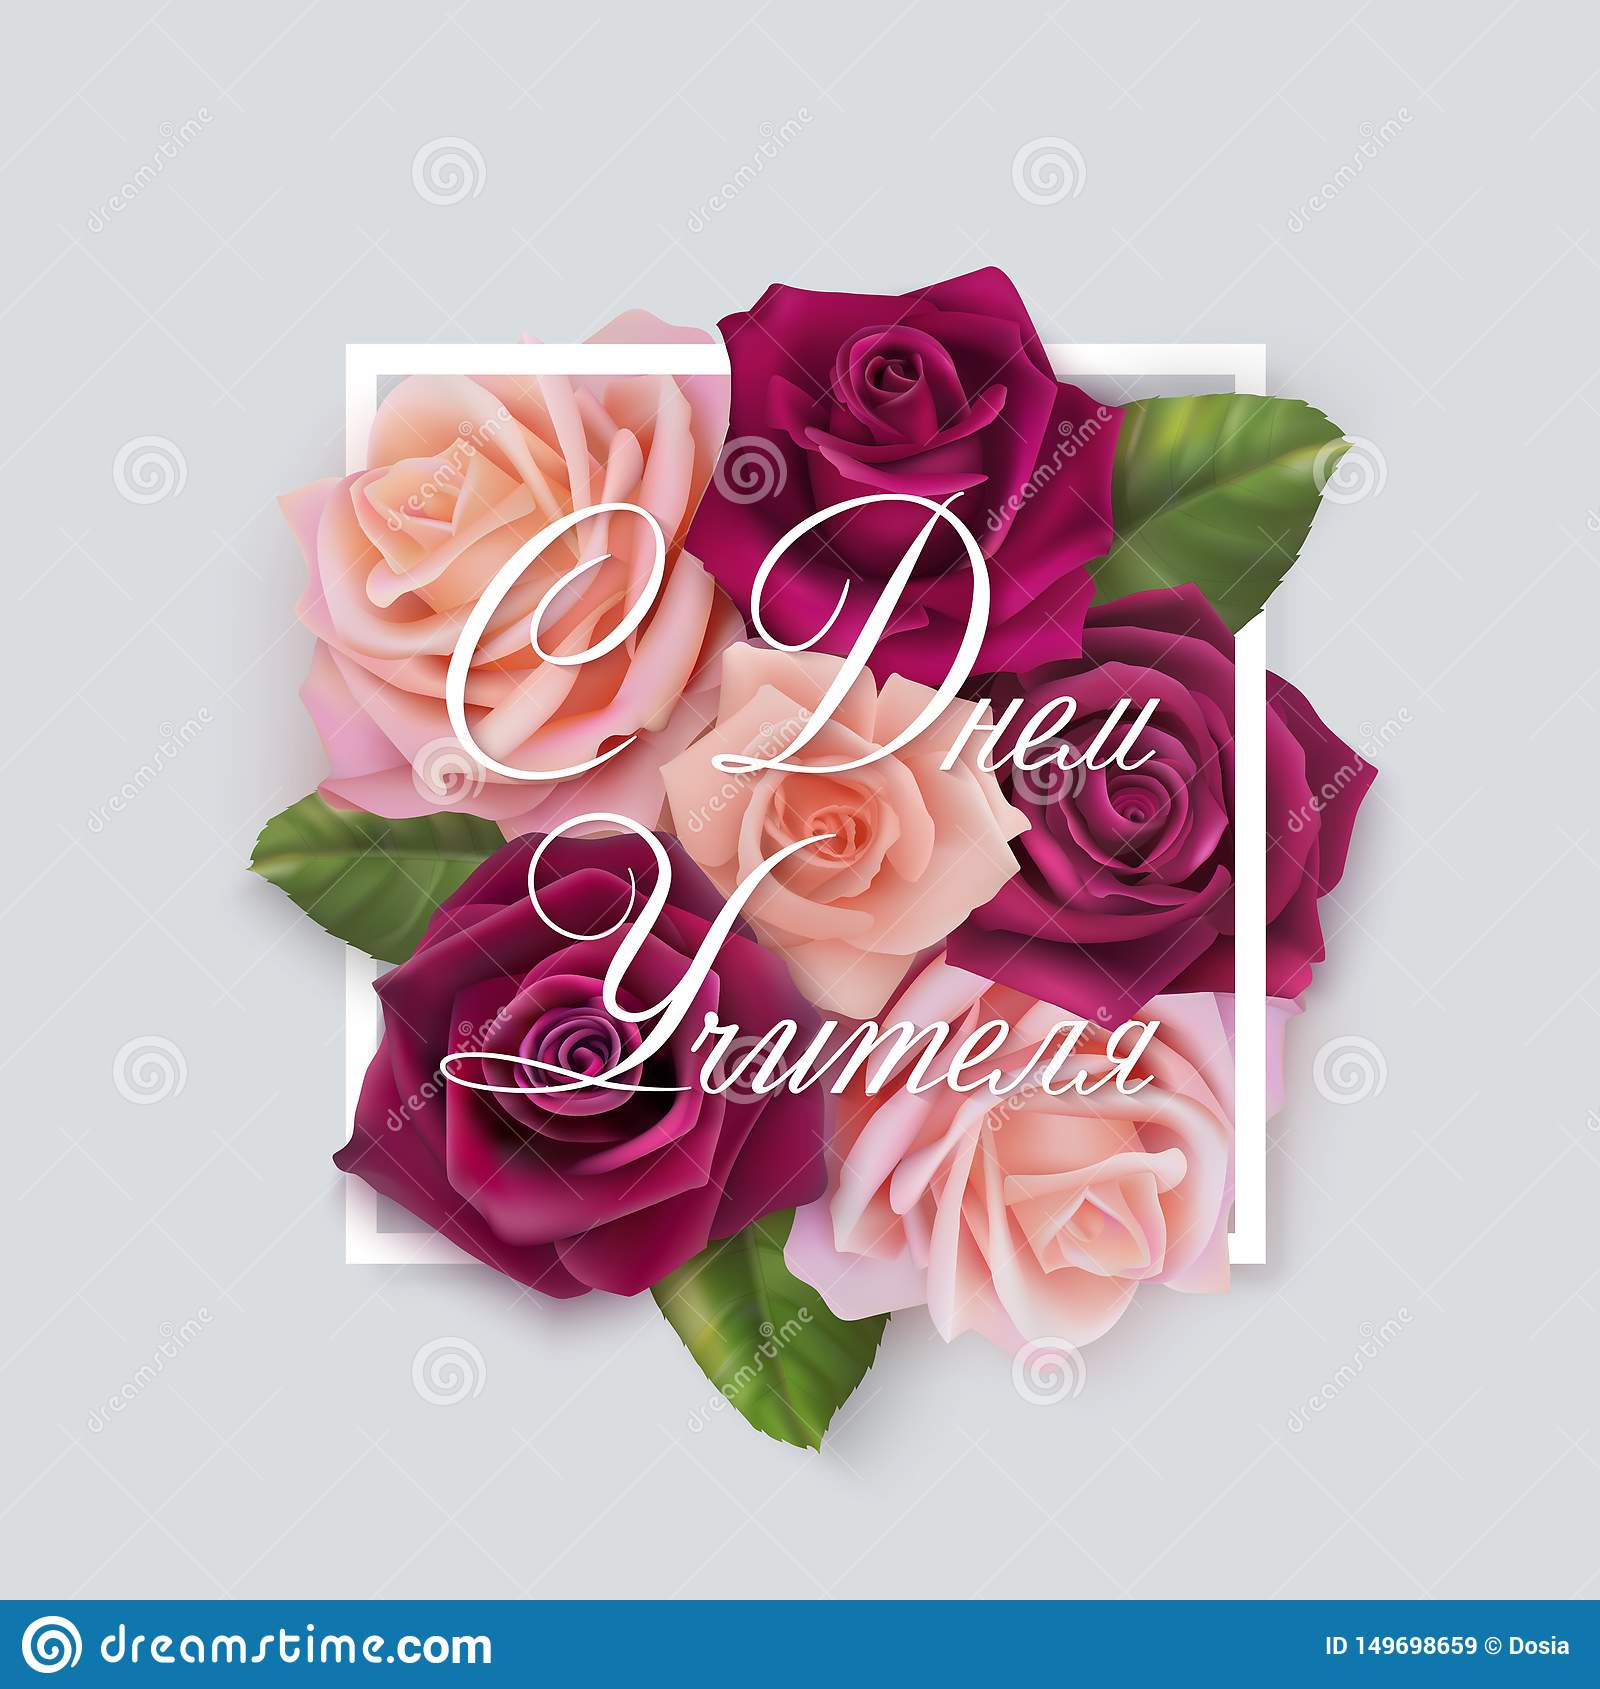 happy teachers day card with roses stock vector